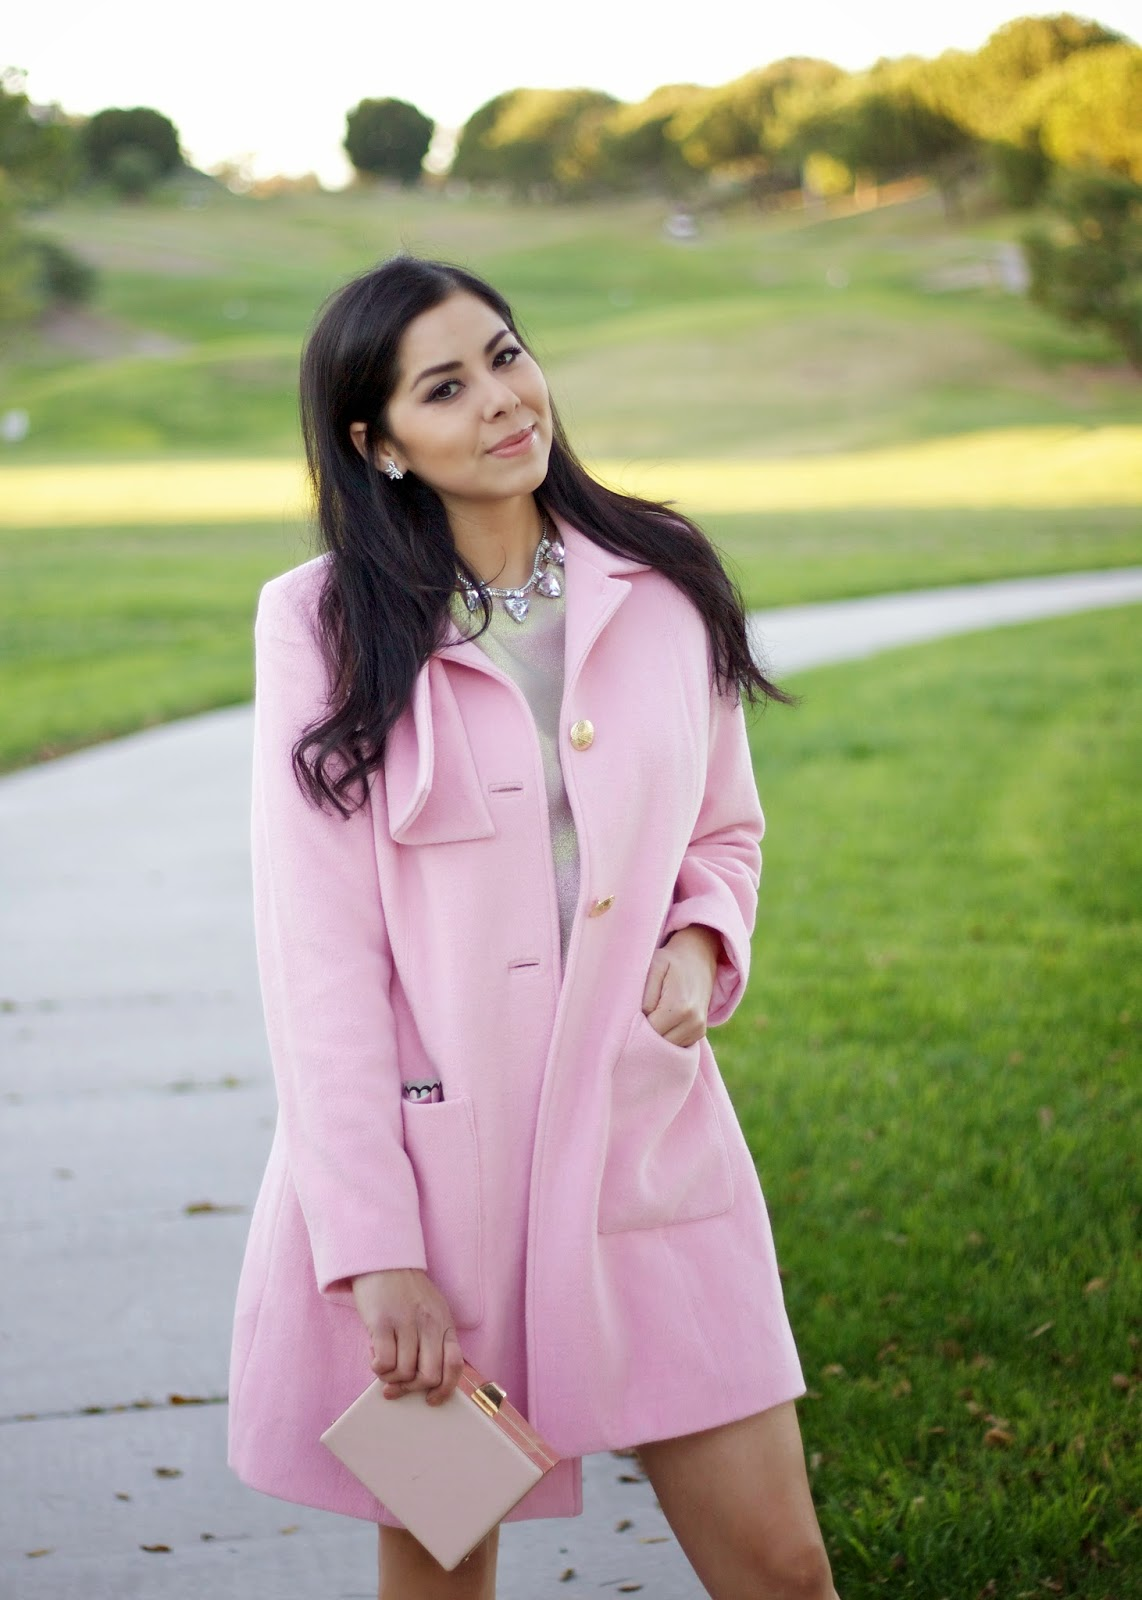 Pastel Holidays, how to wear pastels in winter, winter pastels, winter pink, nude and pink outfit, ootd, pastel ootd, fashion blogger in pink